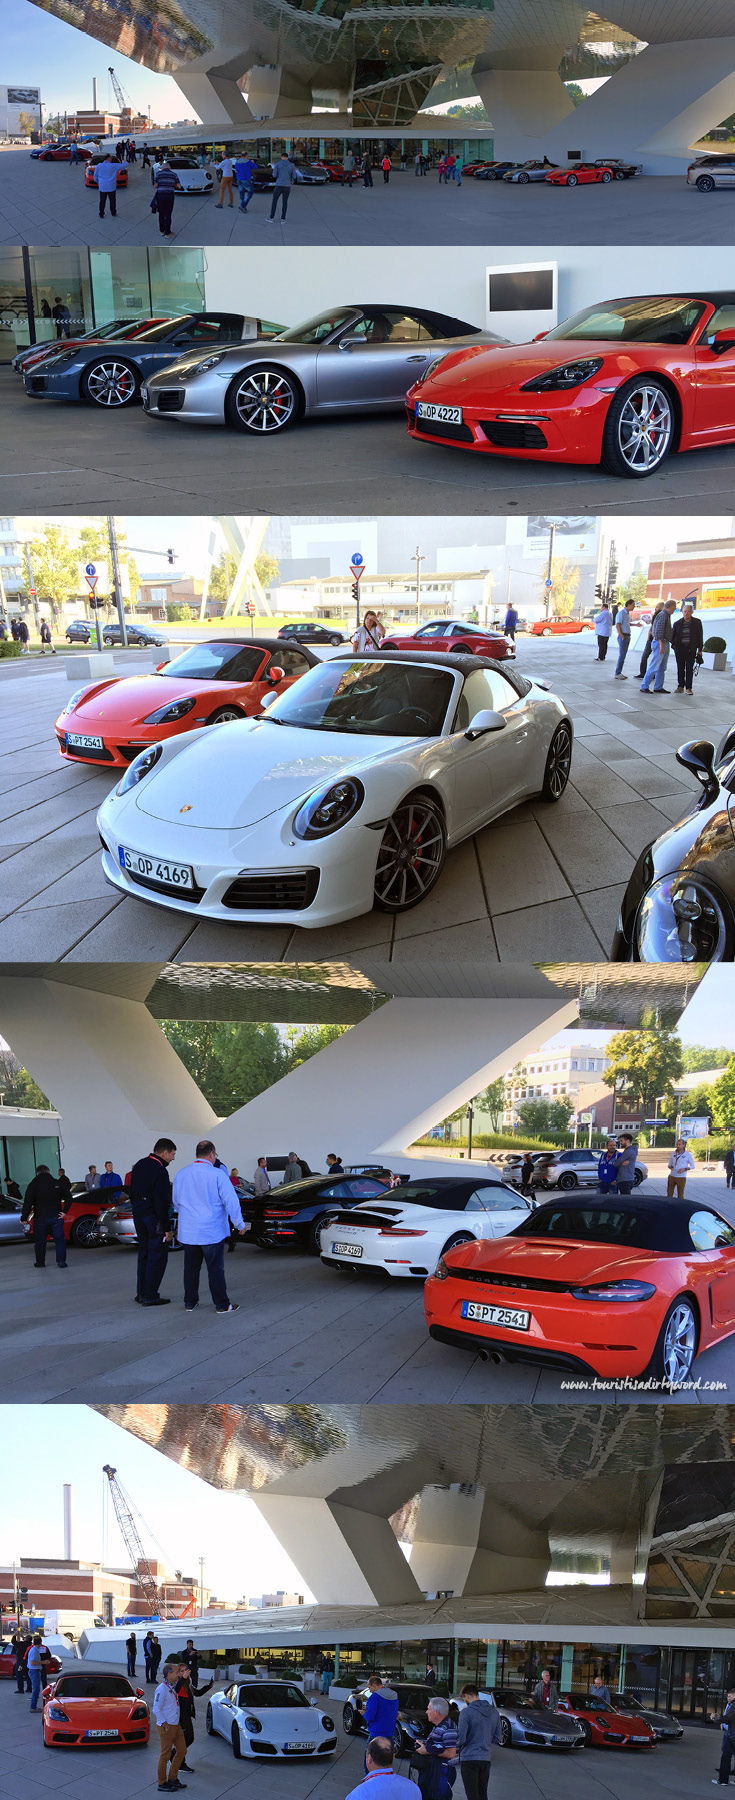 I expected to park in a garage or in a lot, but to my surprise our group has special parking privileges right in front of the Porsche Museum entrance.